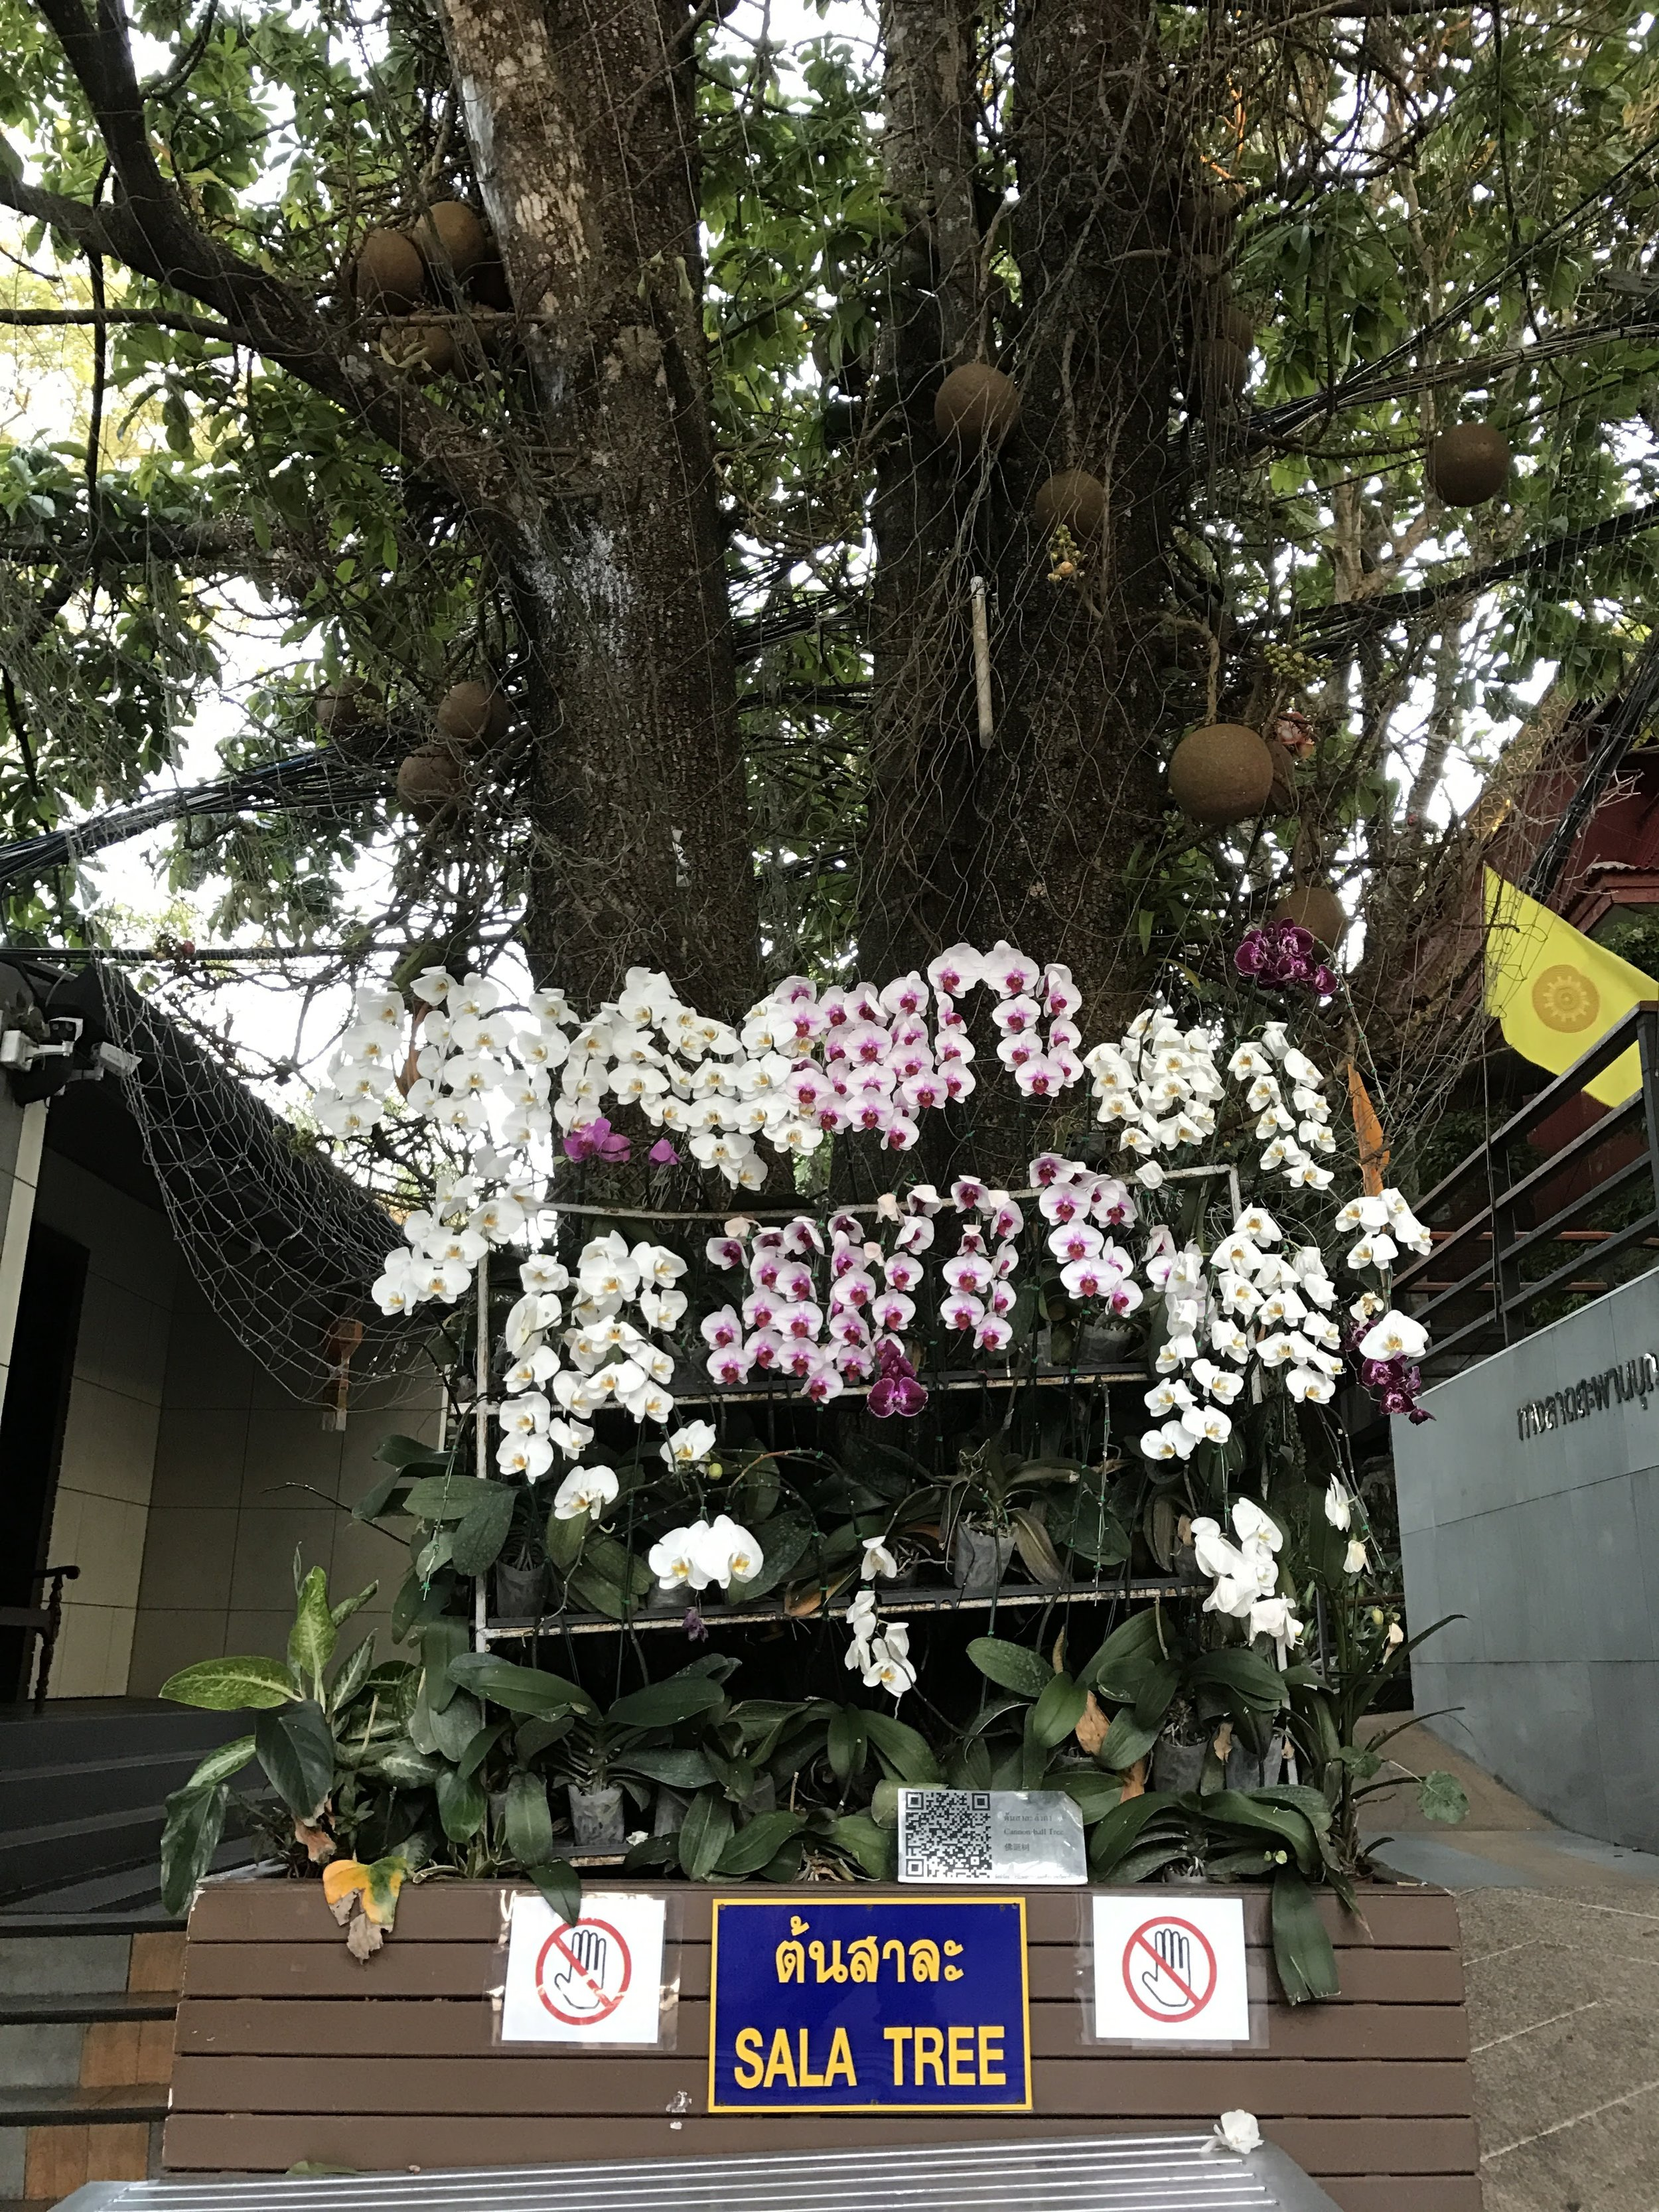 The Sala tree is significant in Buddhist tradition as the tree under which Gautama Buddha was born.